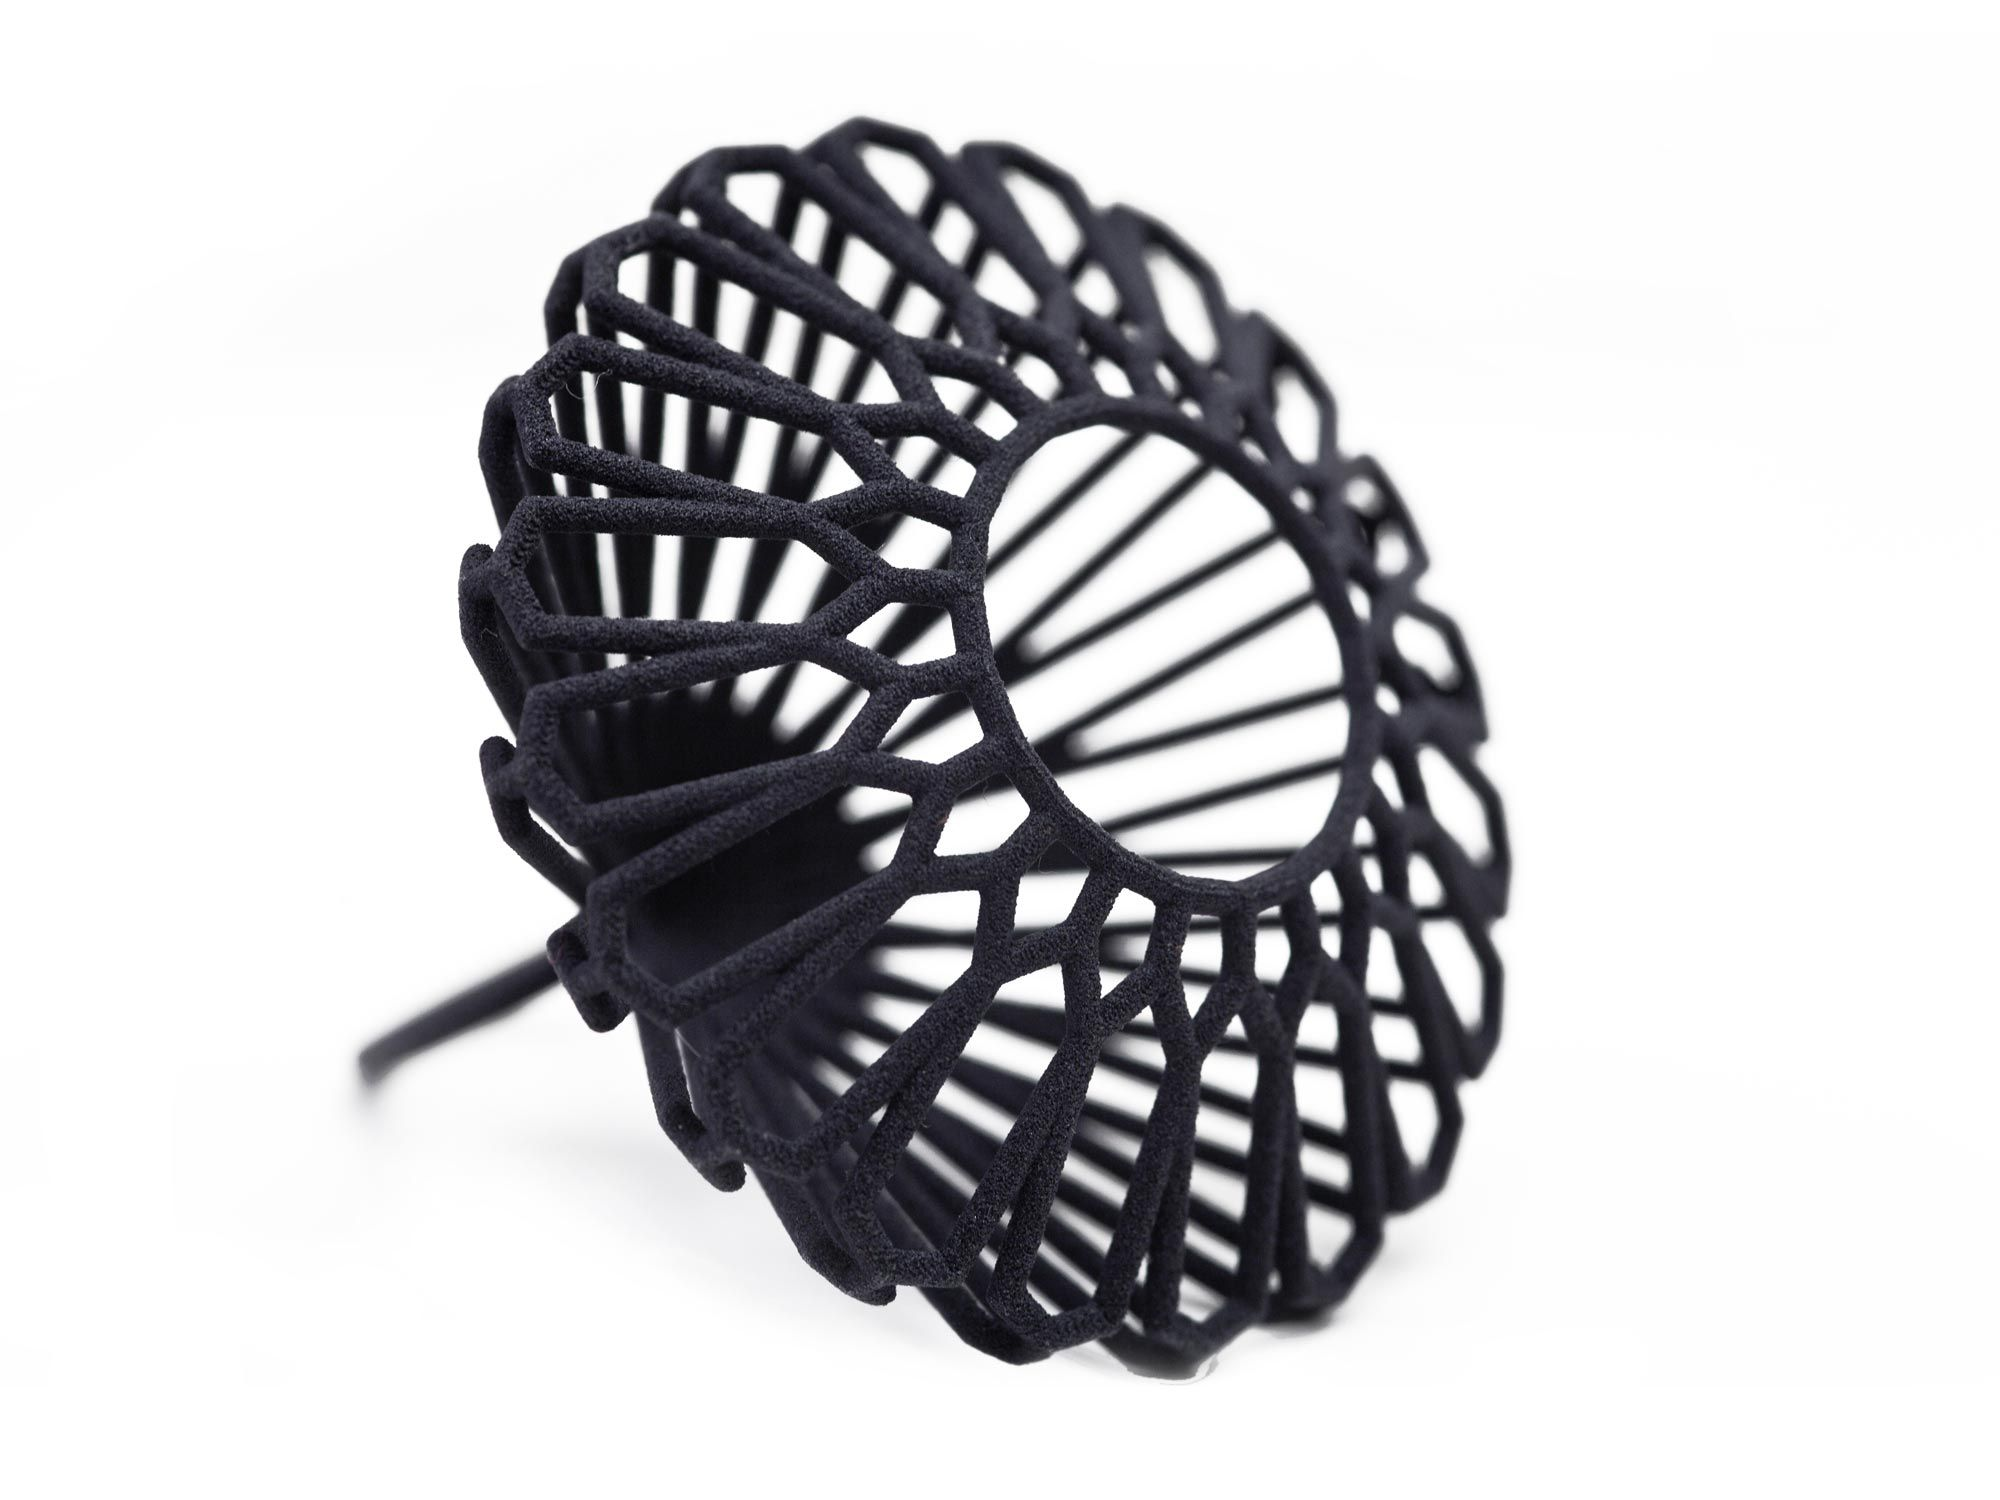 3D printed ring.  MYBF is designed by Orlando Fernandez for Maison 203